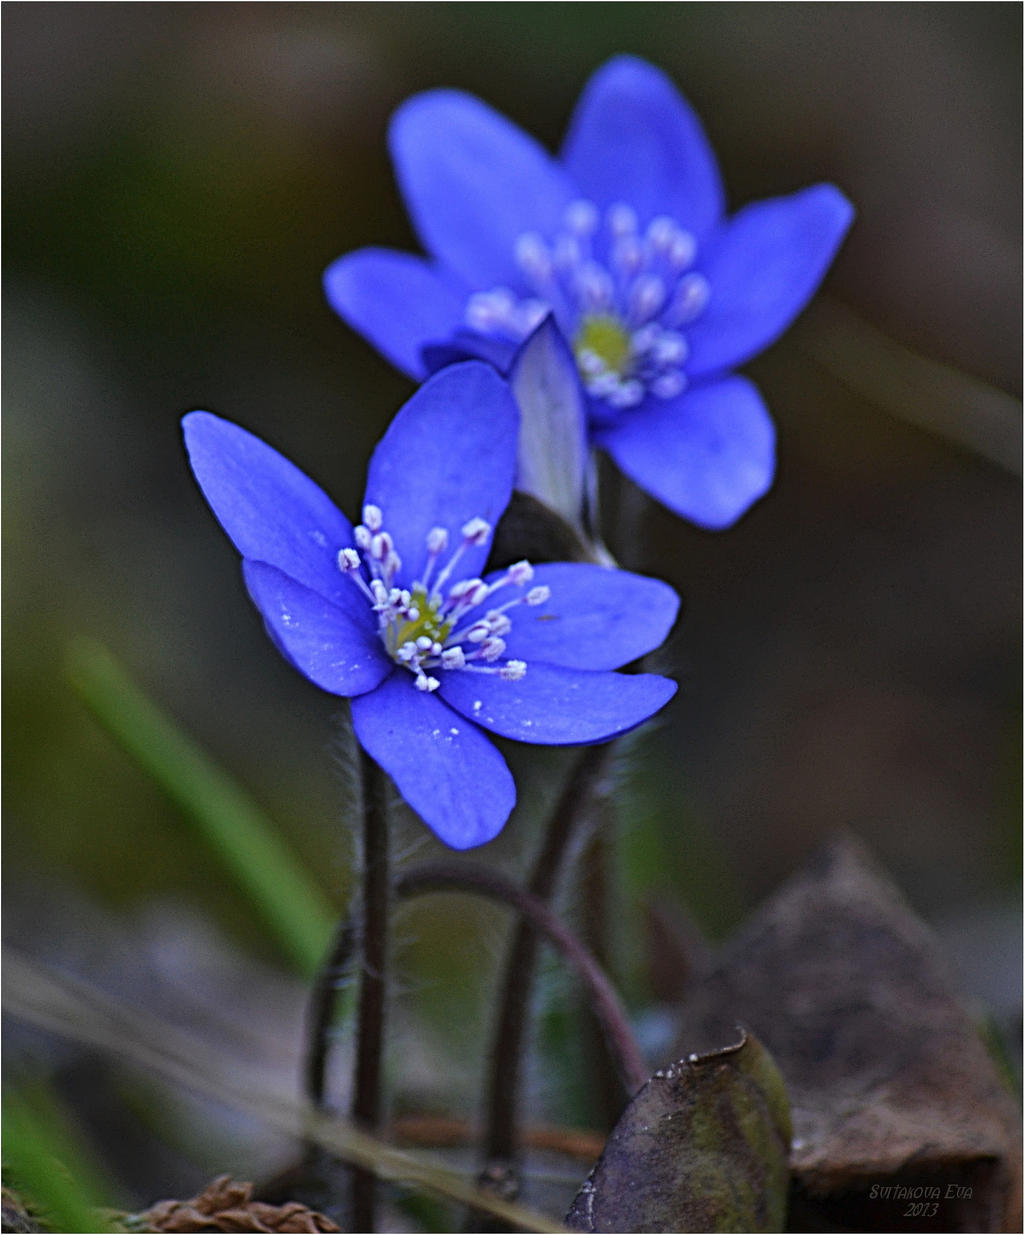 Blue spring flowers by svitakovaeva on deviantart blue spring flowers by svitakovaeva blue spring flowers by svitakovaeva mightylinksfo